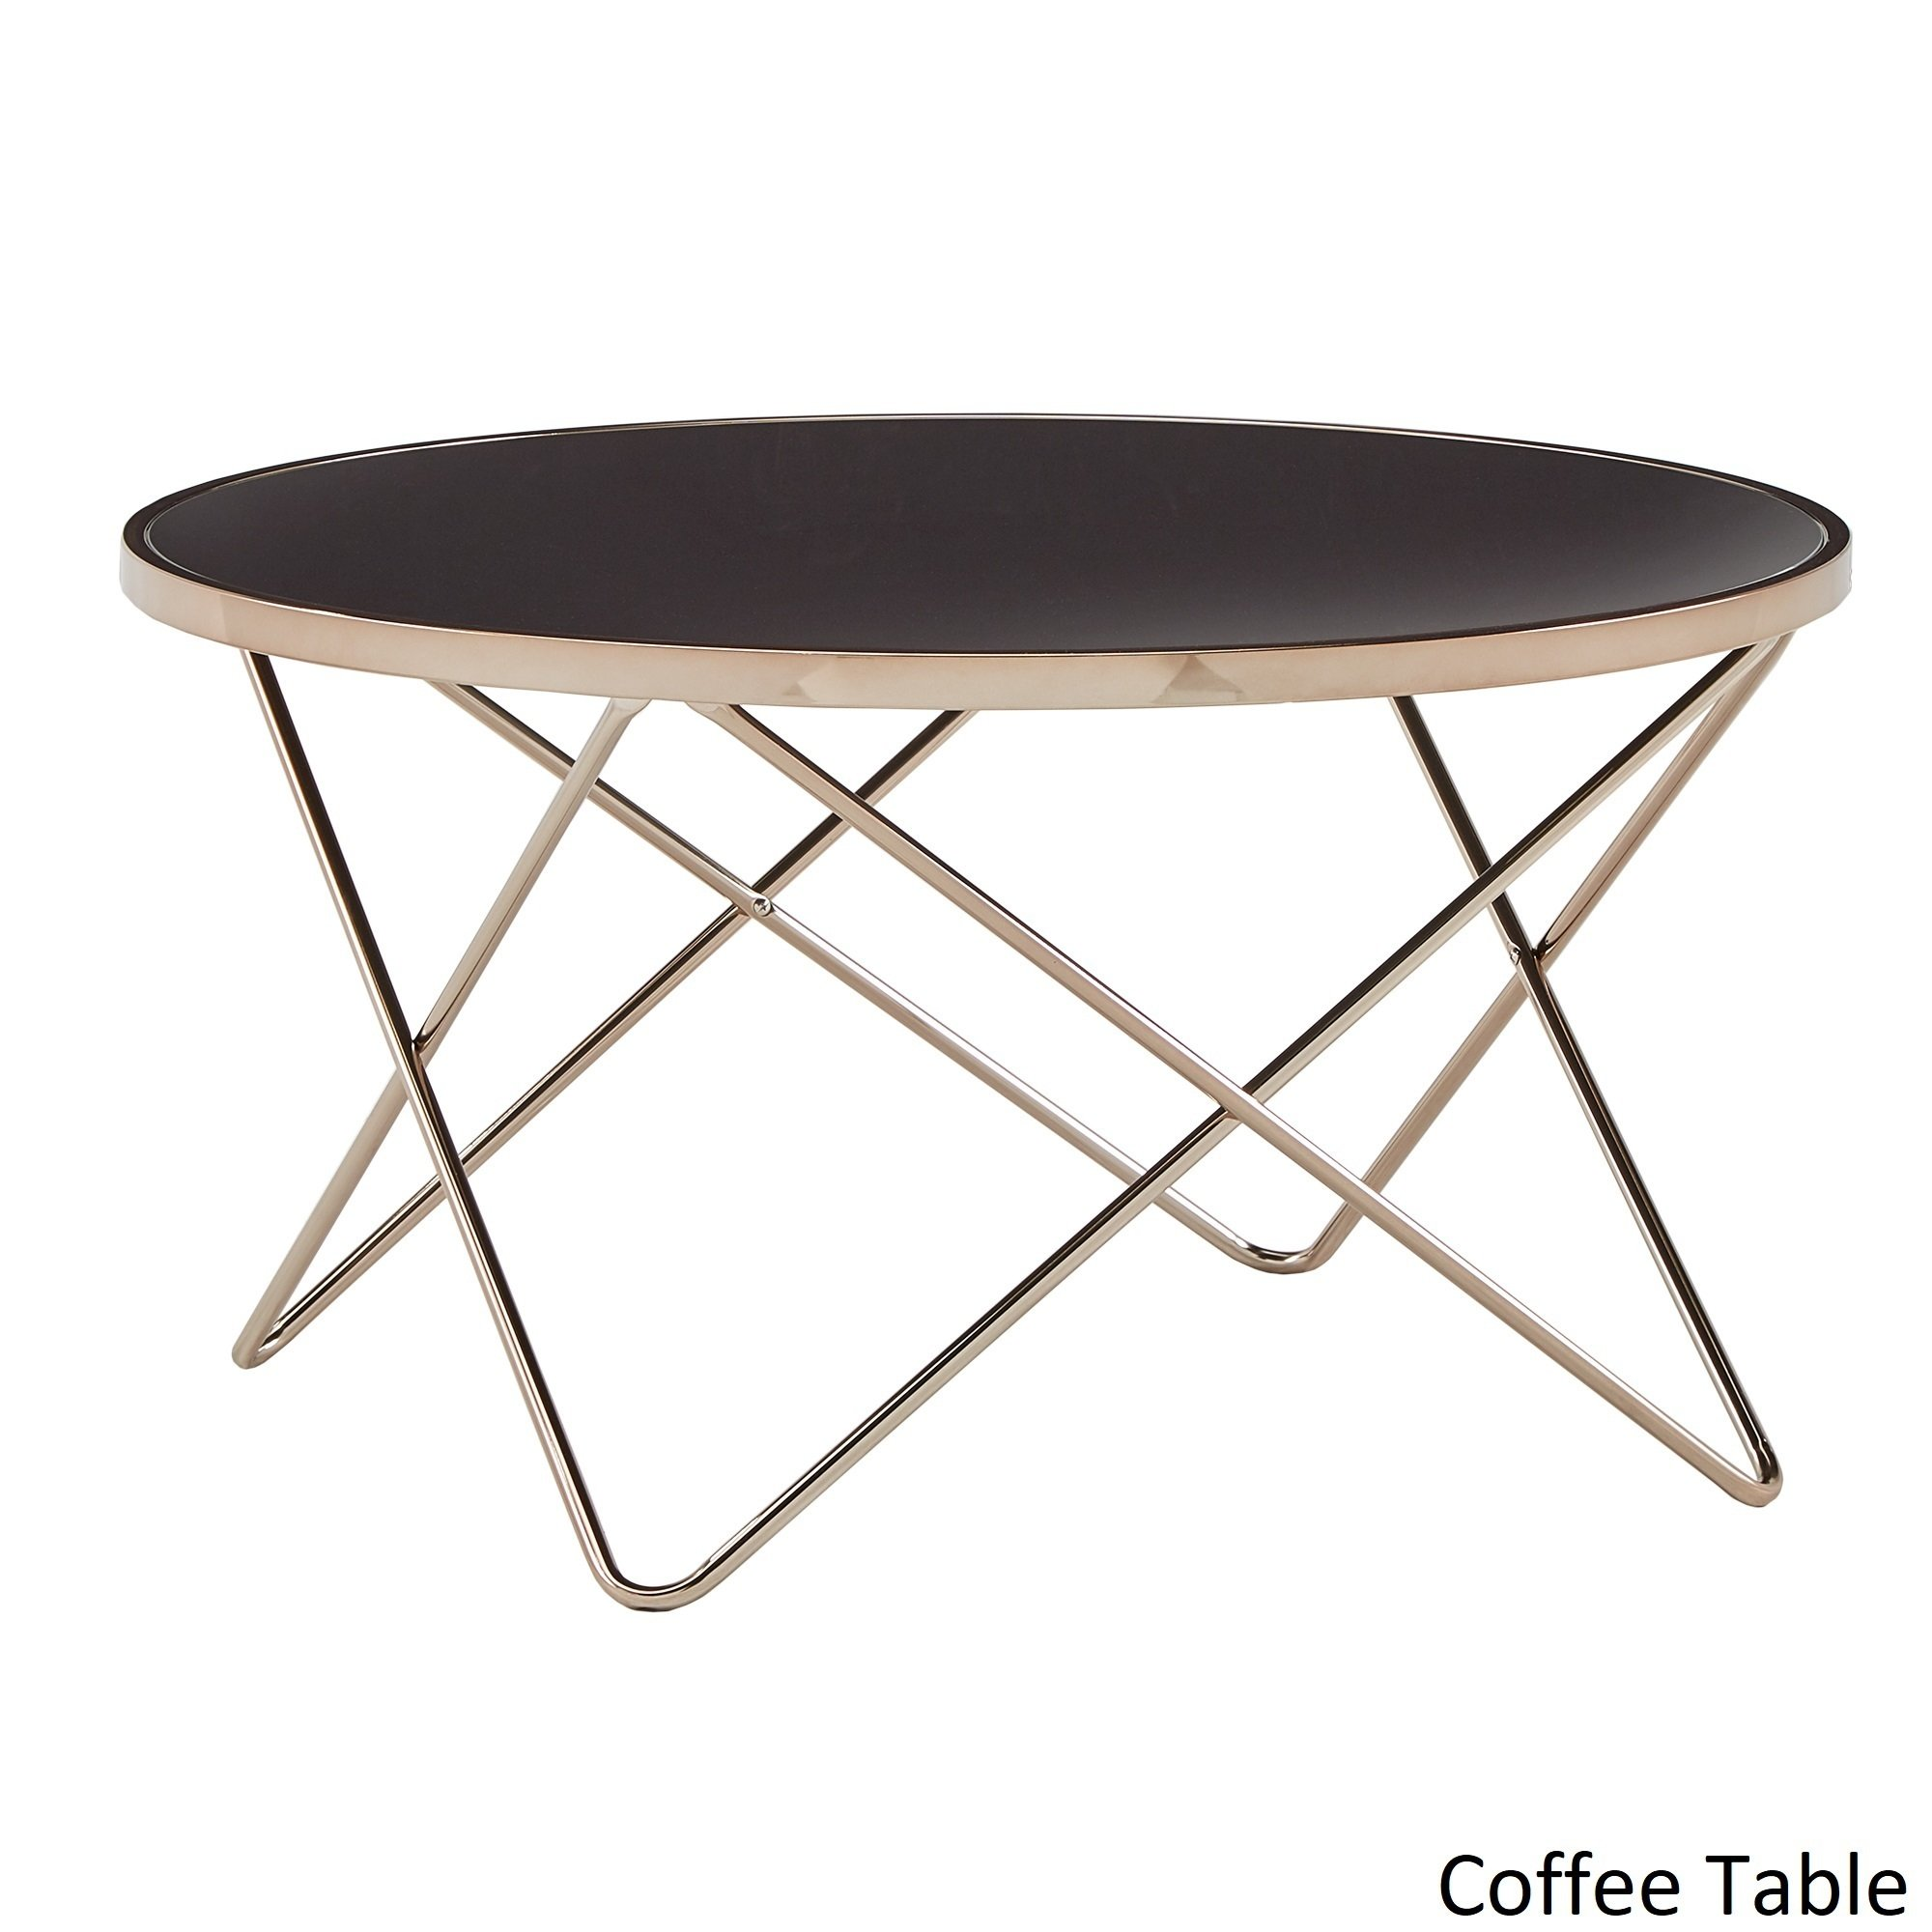 gabe champagne gold finish hairpin leg accent tables with black glass top inspire bold room essentials table free shipping today rectangular marble dining farm style coffee easy